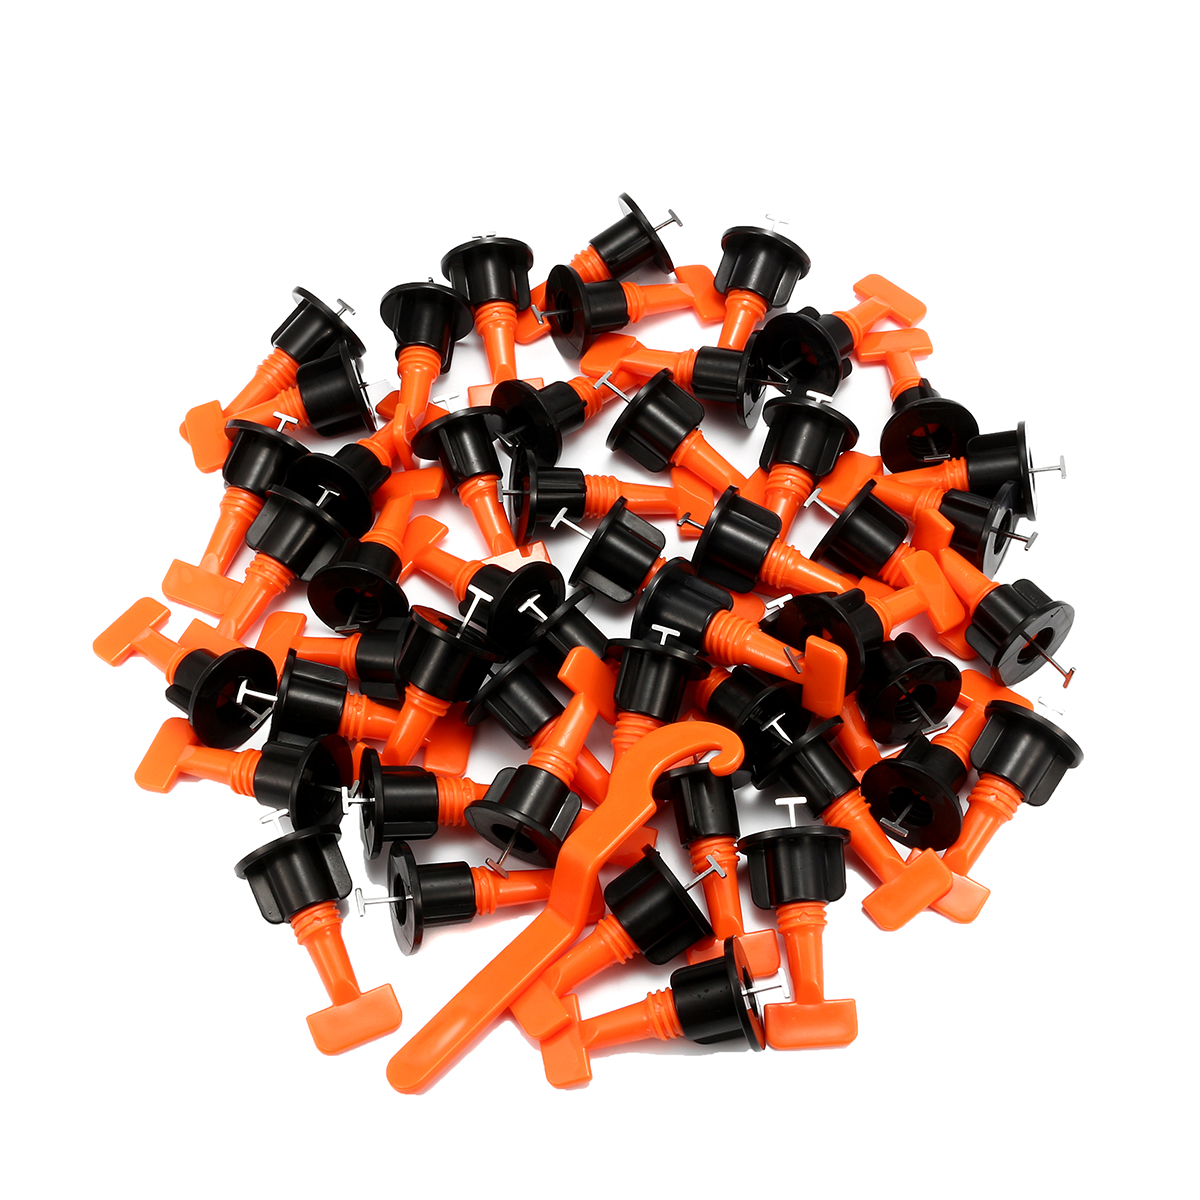 50Sets/Bag Plastic Ceramic Leveler Tools T Shaped Leveling System Kits For Tiles Reusable T Leveling Locator System Tile Spacers 100 caps 250 clips 1 plier ceramic accessories livellamento floor spacers leveler tiles tools tile leveling system with tool